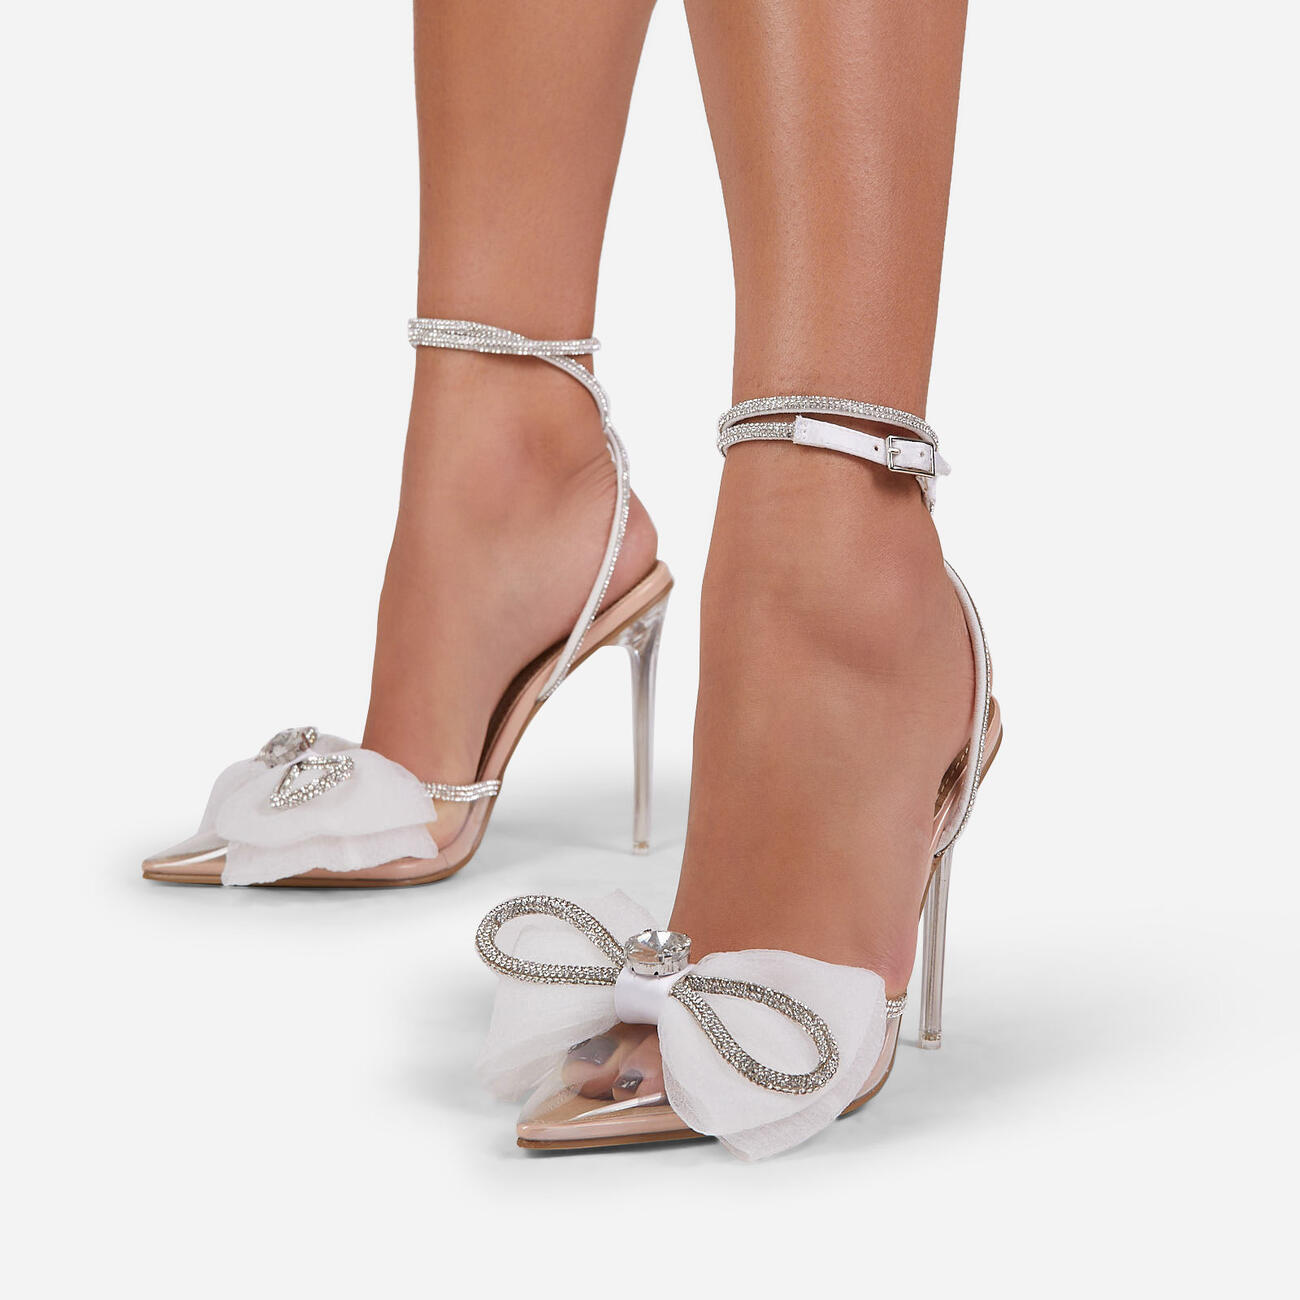 Chriselle Bow Detail Diamante Lace Up Clear Perspex Heel In Nude Patent Image 2